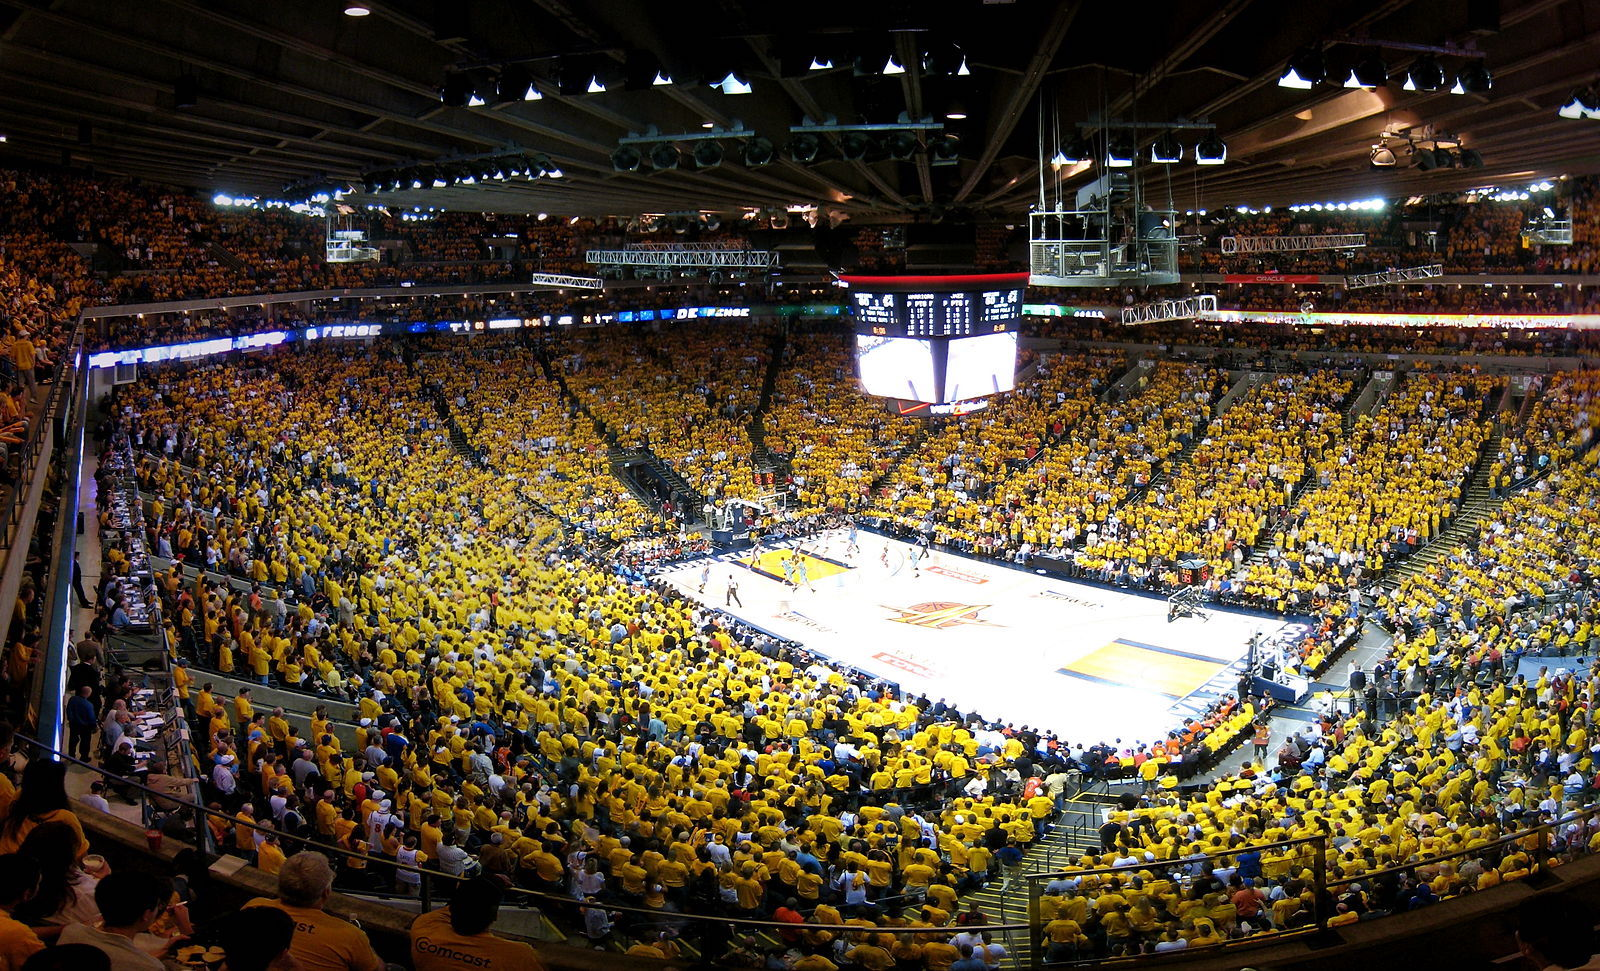 Oracle Arena Nostalgia: 6 Reasons Why Warriors Games Make Us Feel Wistful